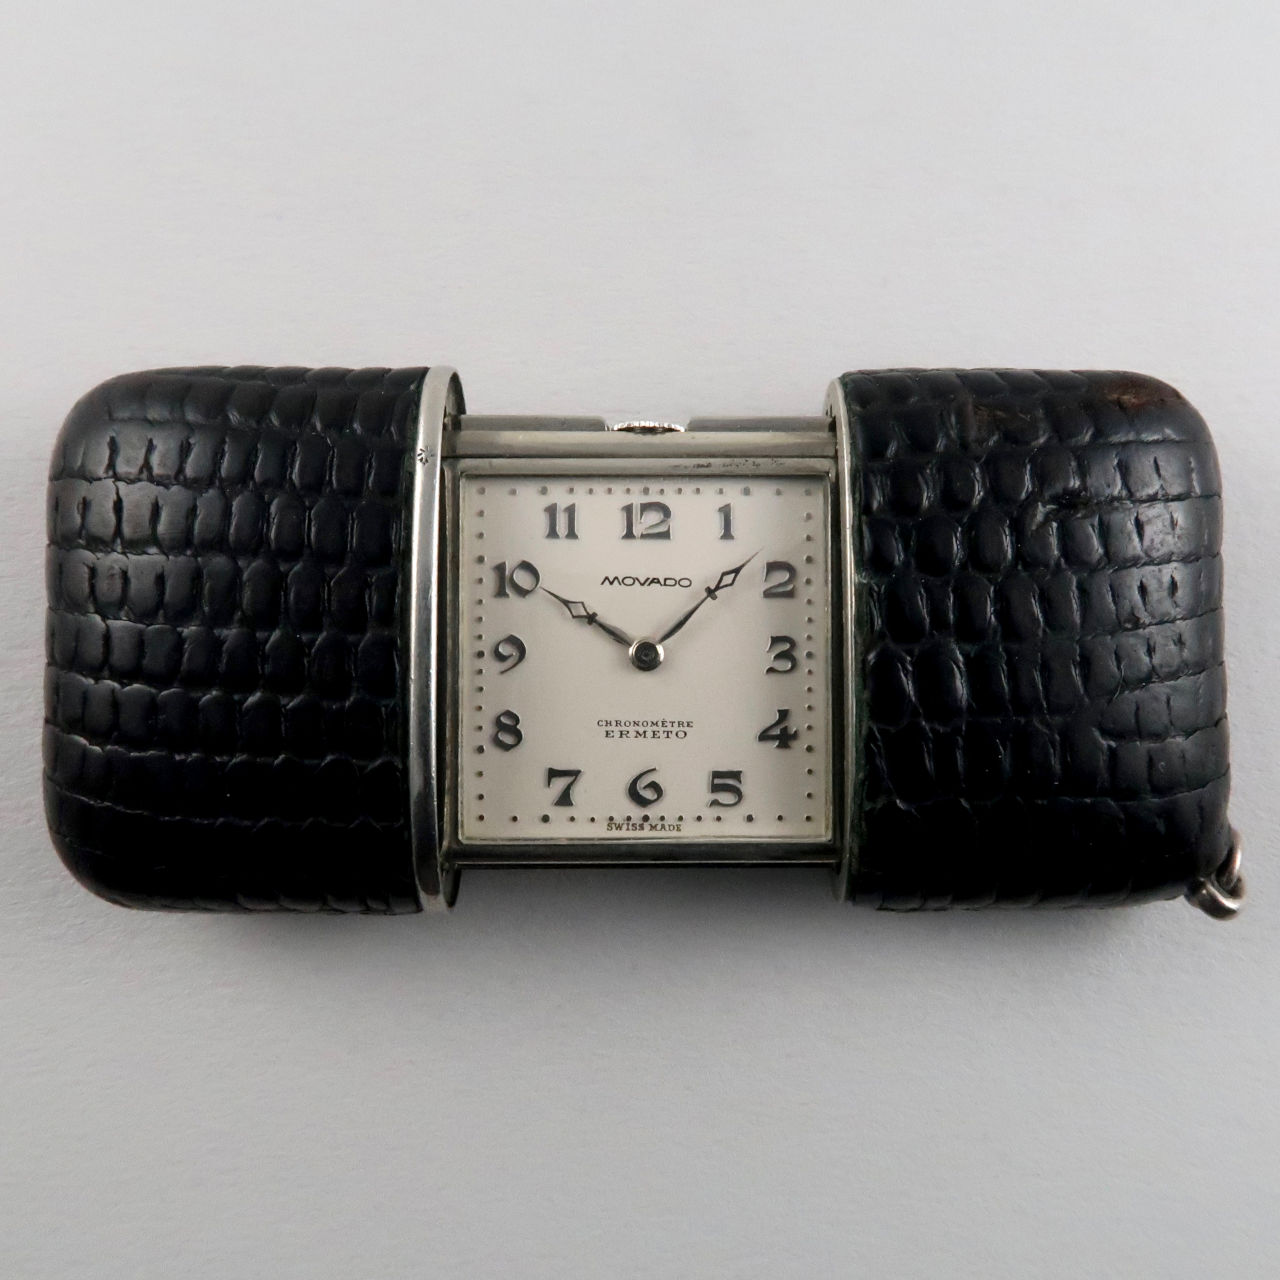 Movado Ermeto Chronomètre steel and leather purse watch, circa 1930